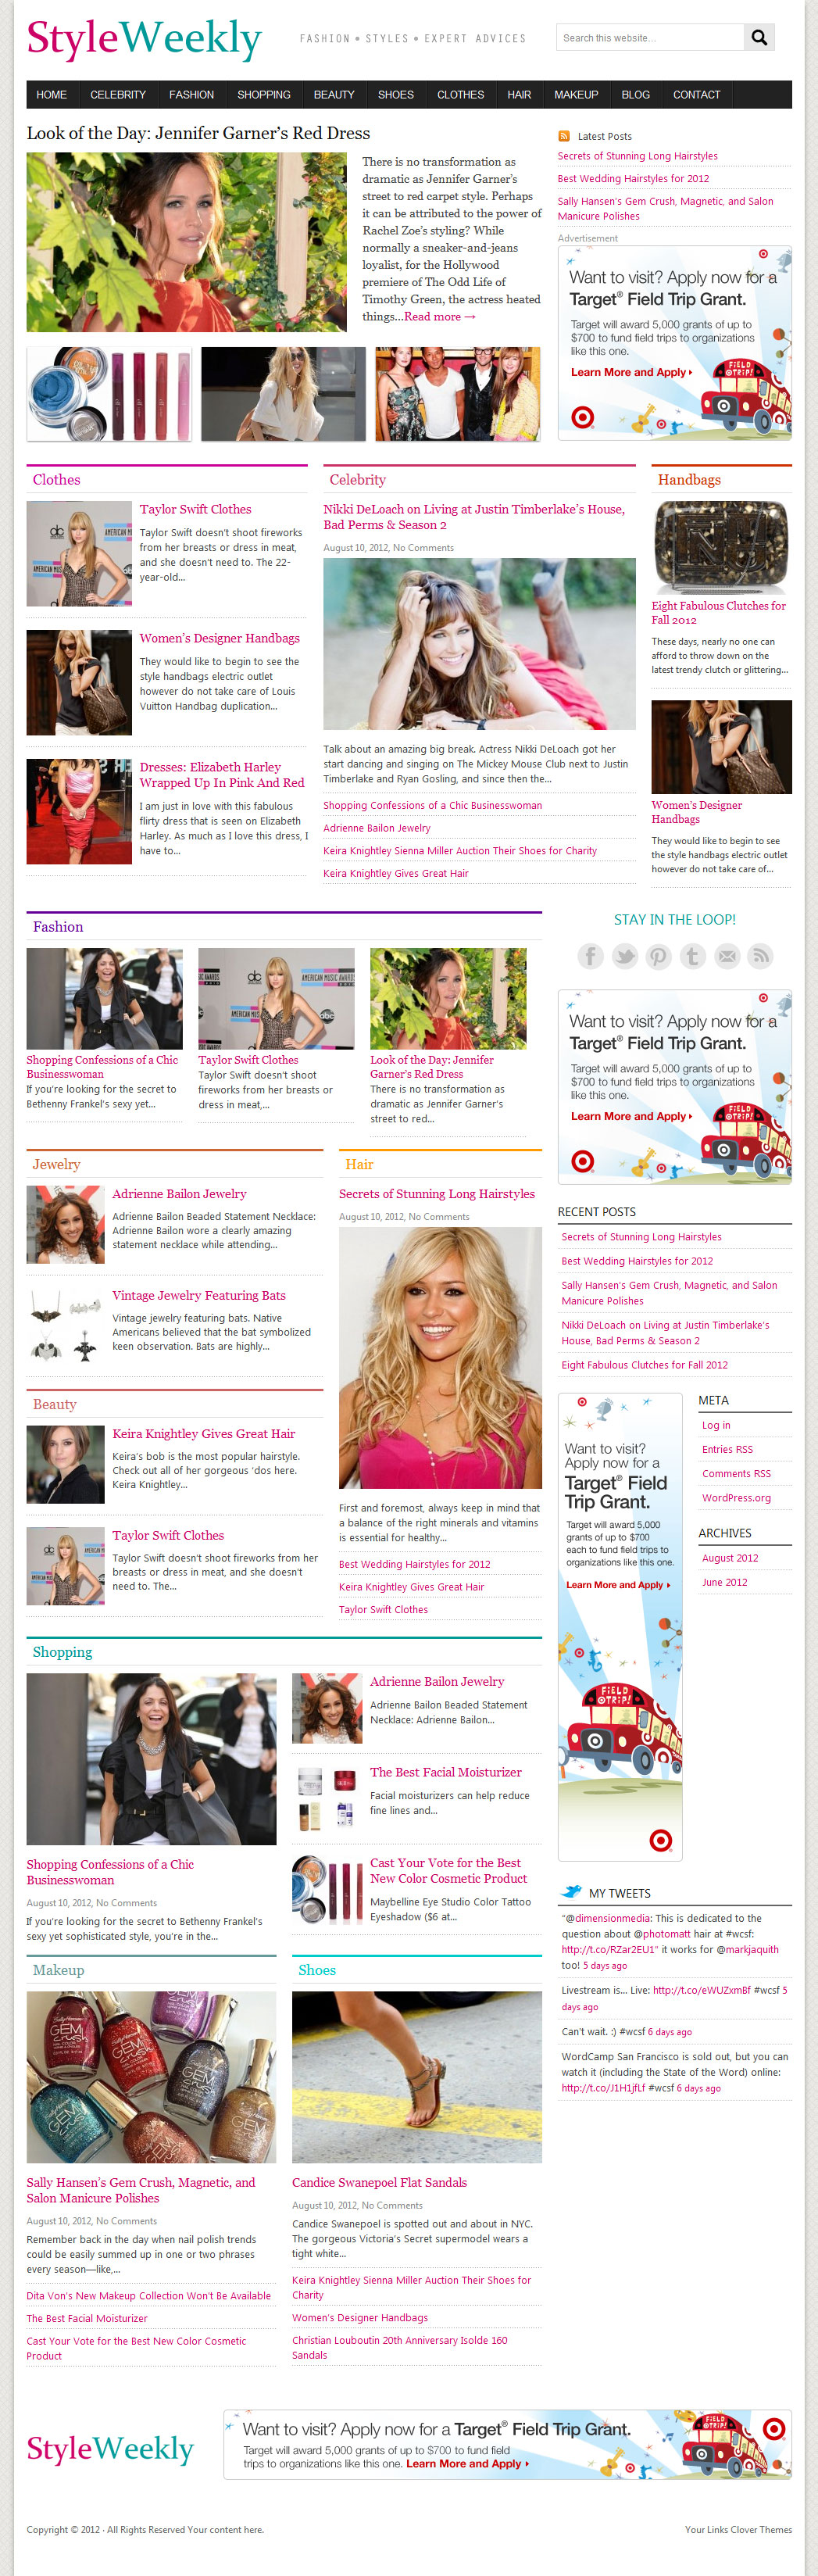 styleweekly wordpress fashion theme